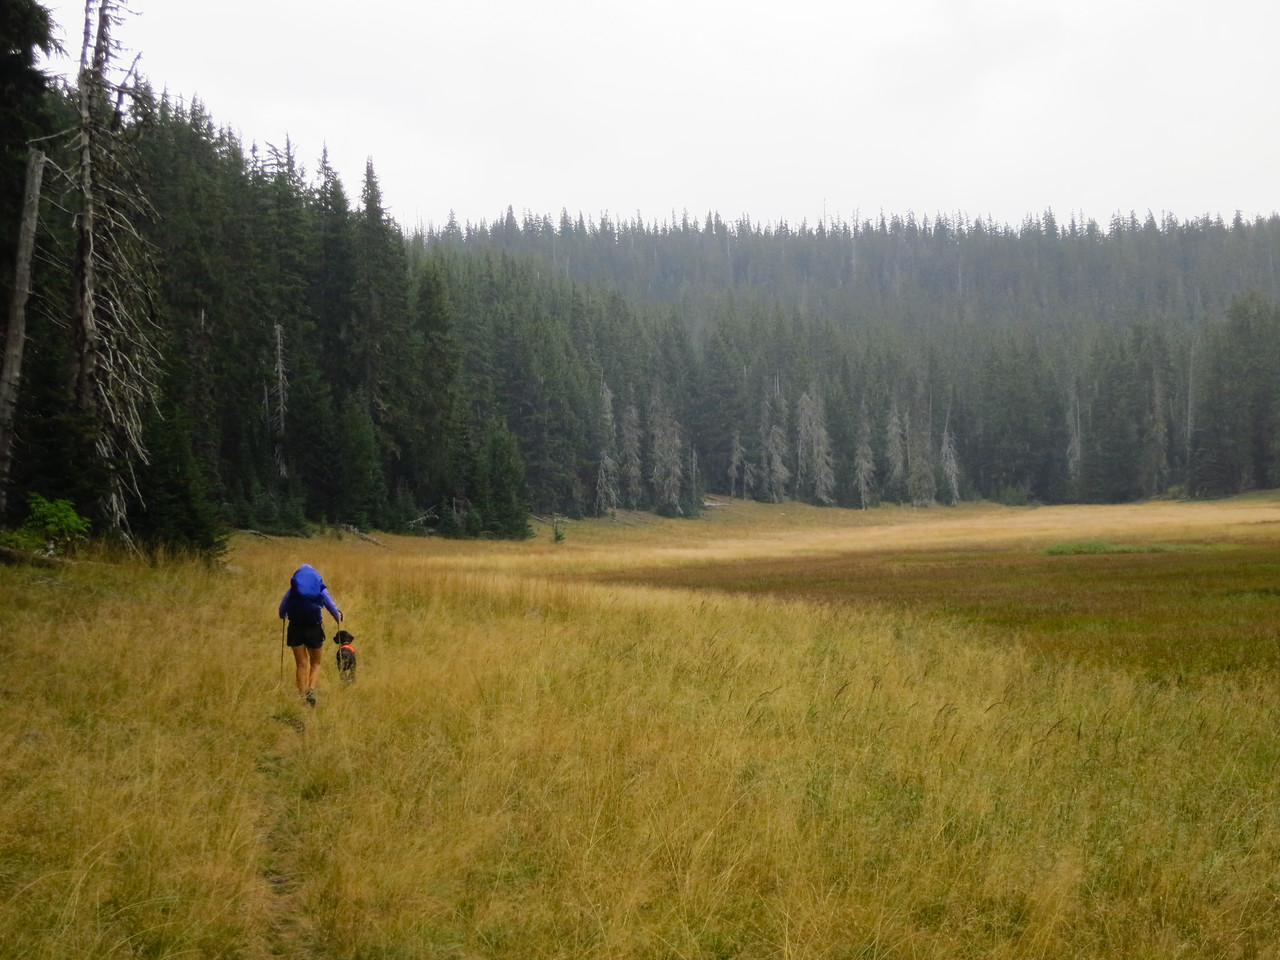 Buck Meadows, overcast and drizzling.